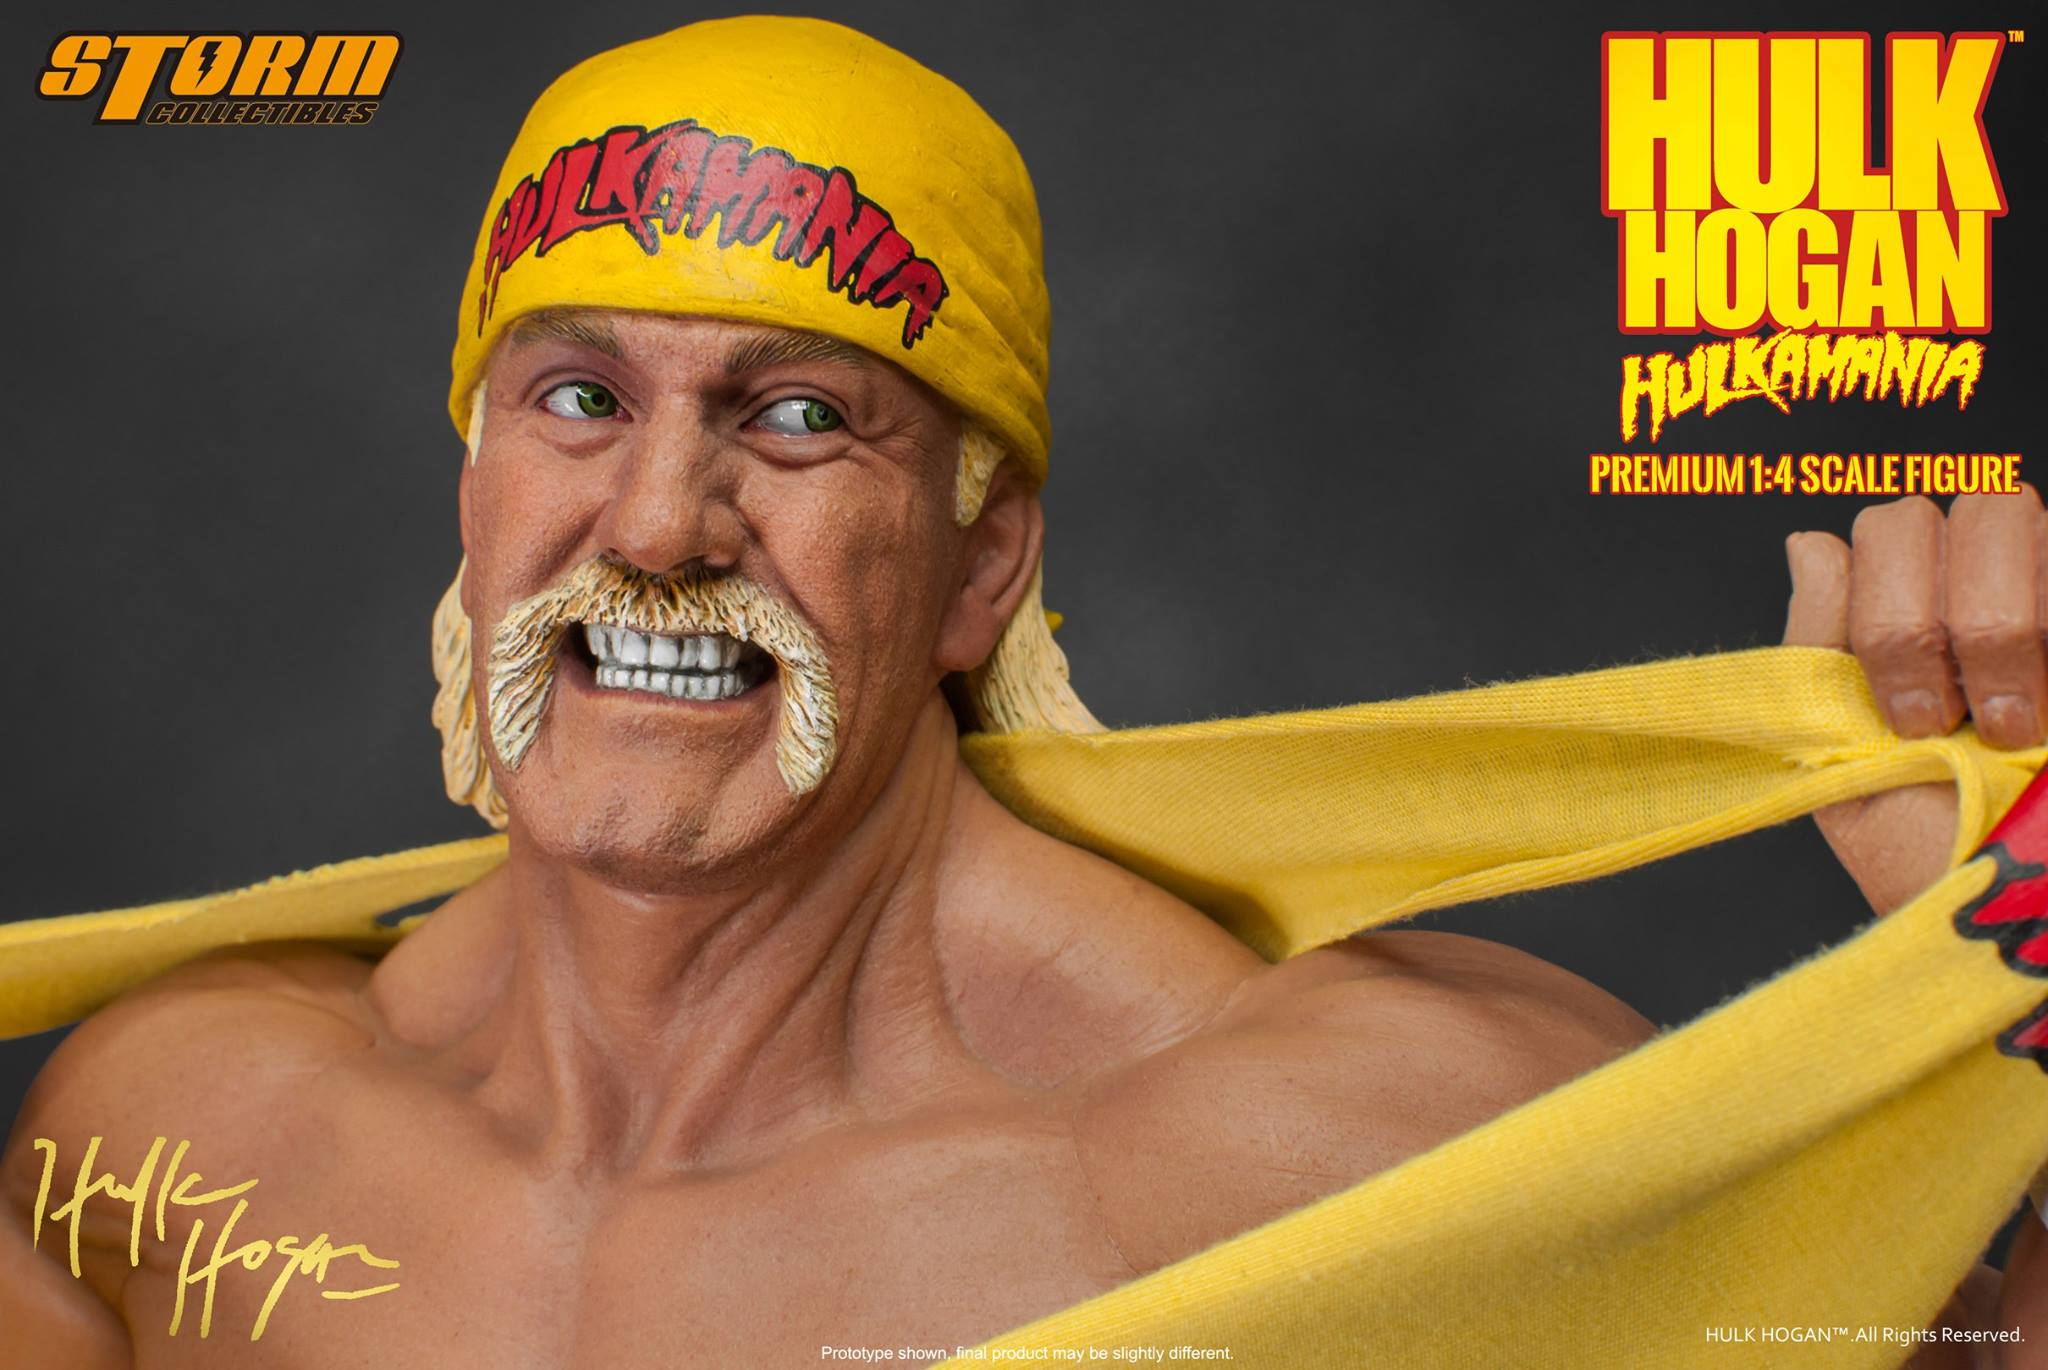 Wwe Hulk Hogan Hulk Hogan Figures By Storm Collectibles